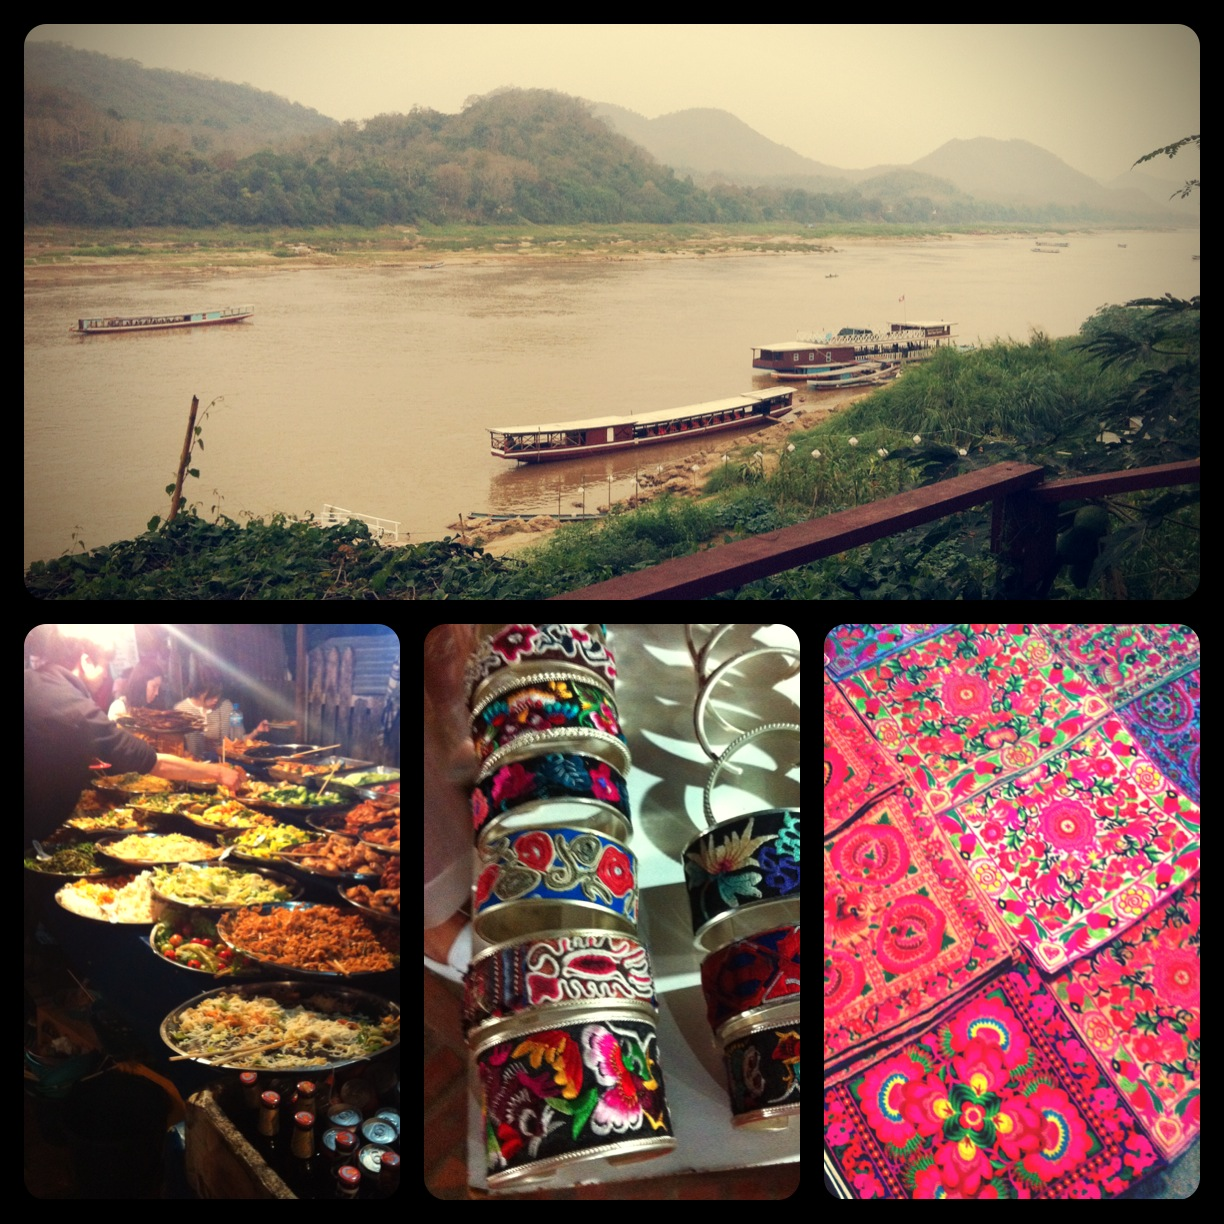 Our last evening in Luang Prabang - dinner overlooking the Mekong River and finding treasures at the night market.